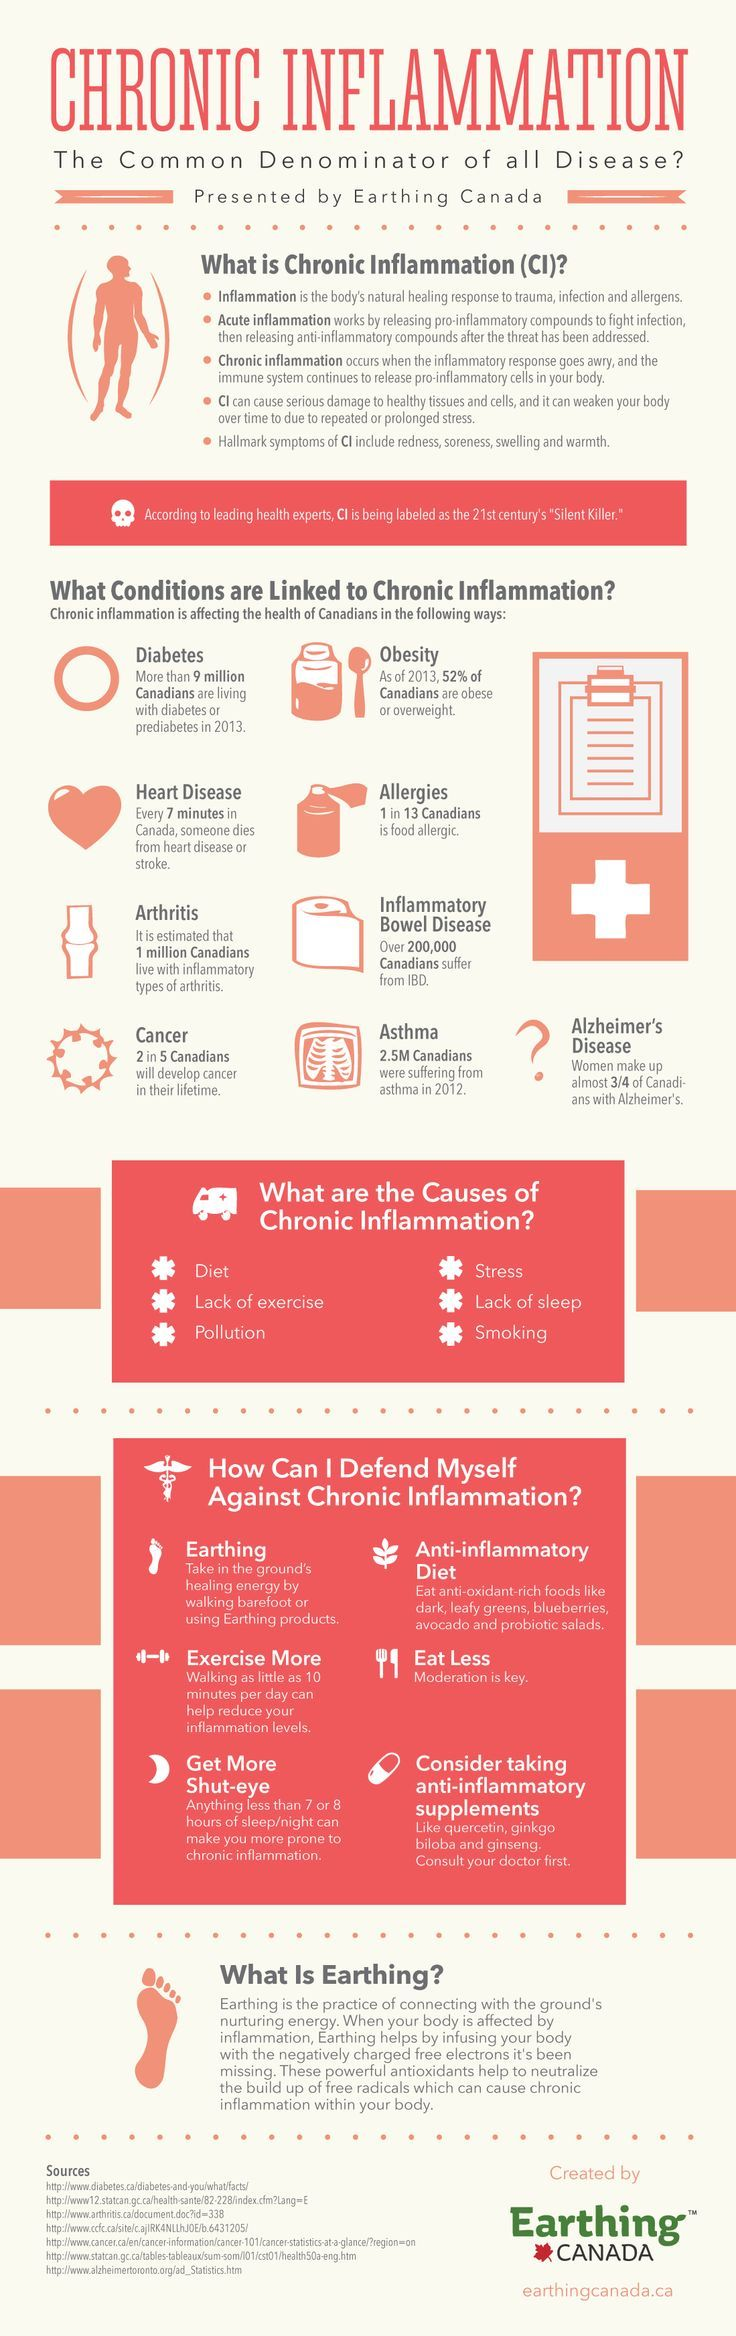 Good info about pain/inflammation and benefits of herbs, sleep, etc. Lots of good infographics.